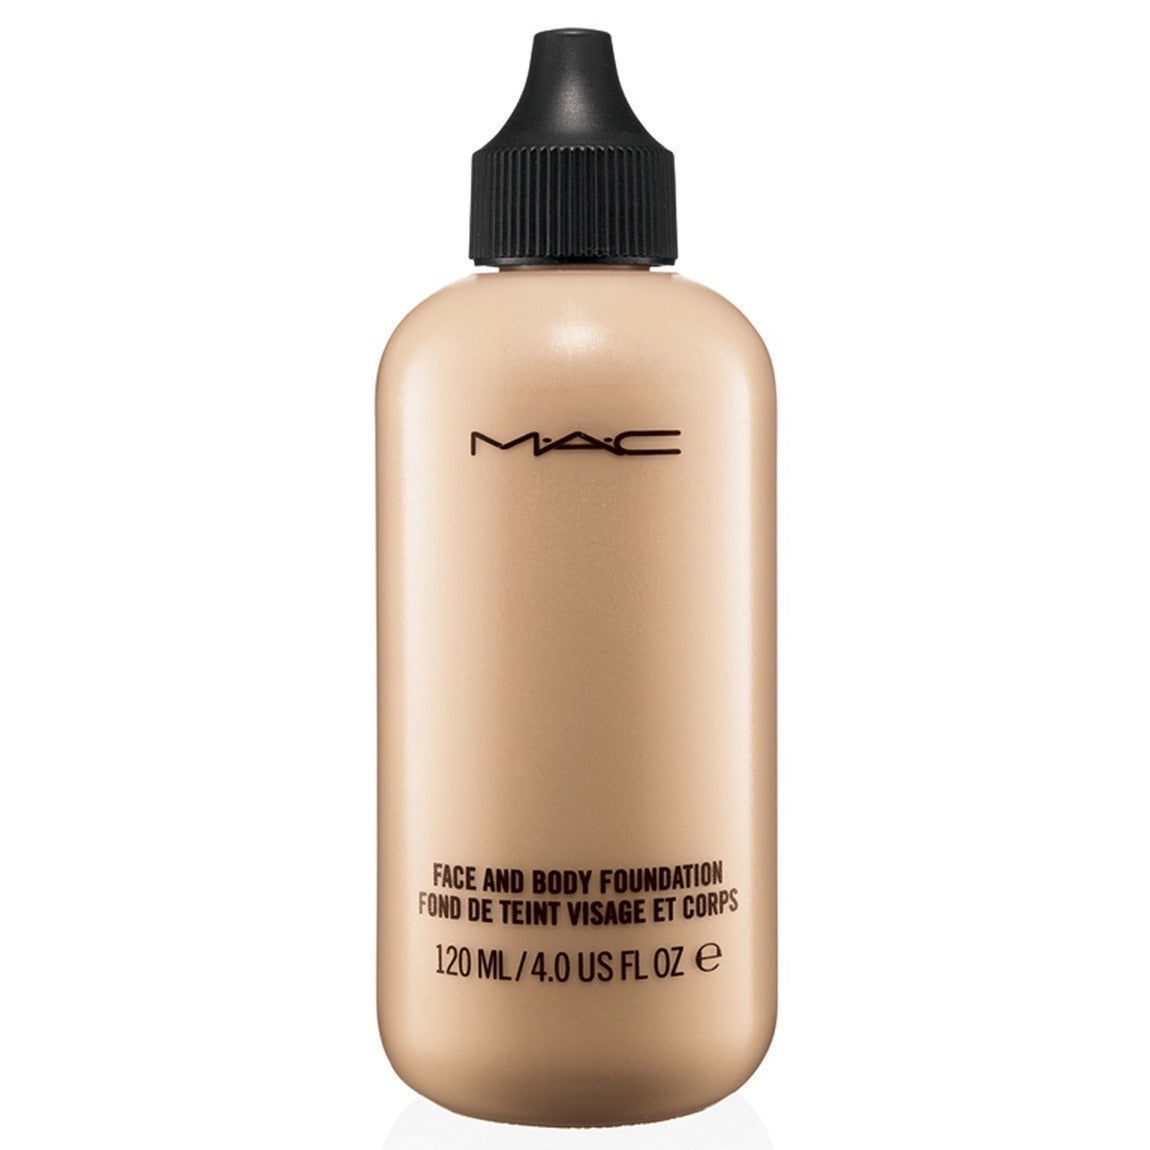 WHOLESALE MAC STUDIO FACE AND BODY FOUNDATION 1.7 OZ ASSORTED SHADES - 7 PIECE LOT